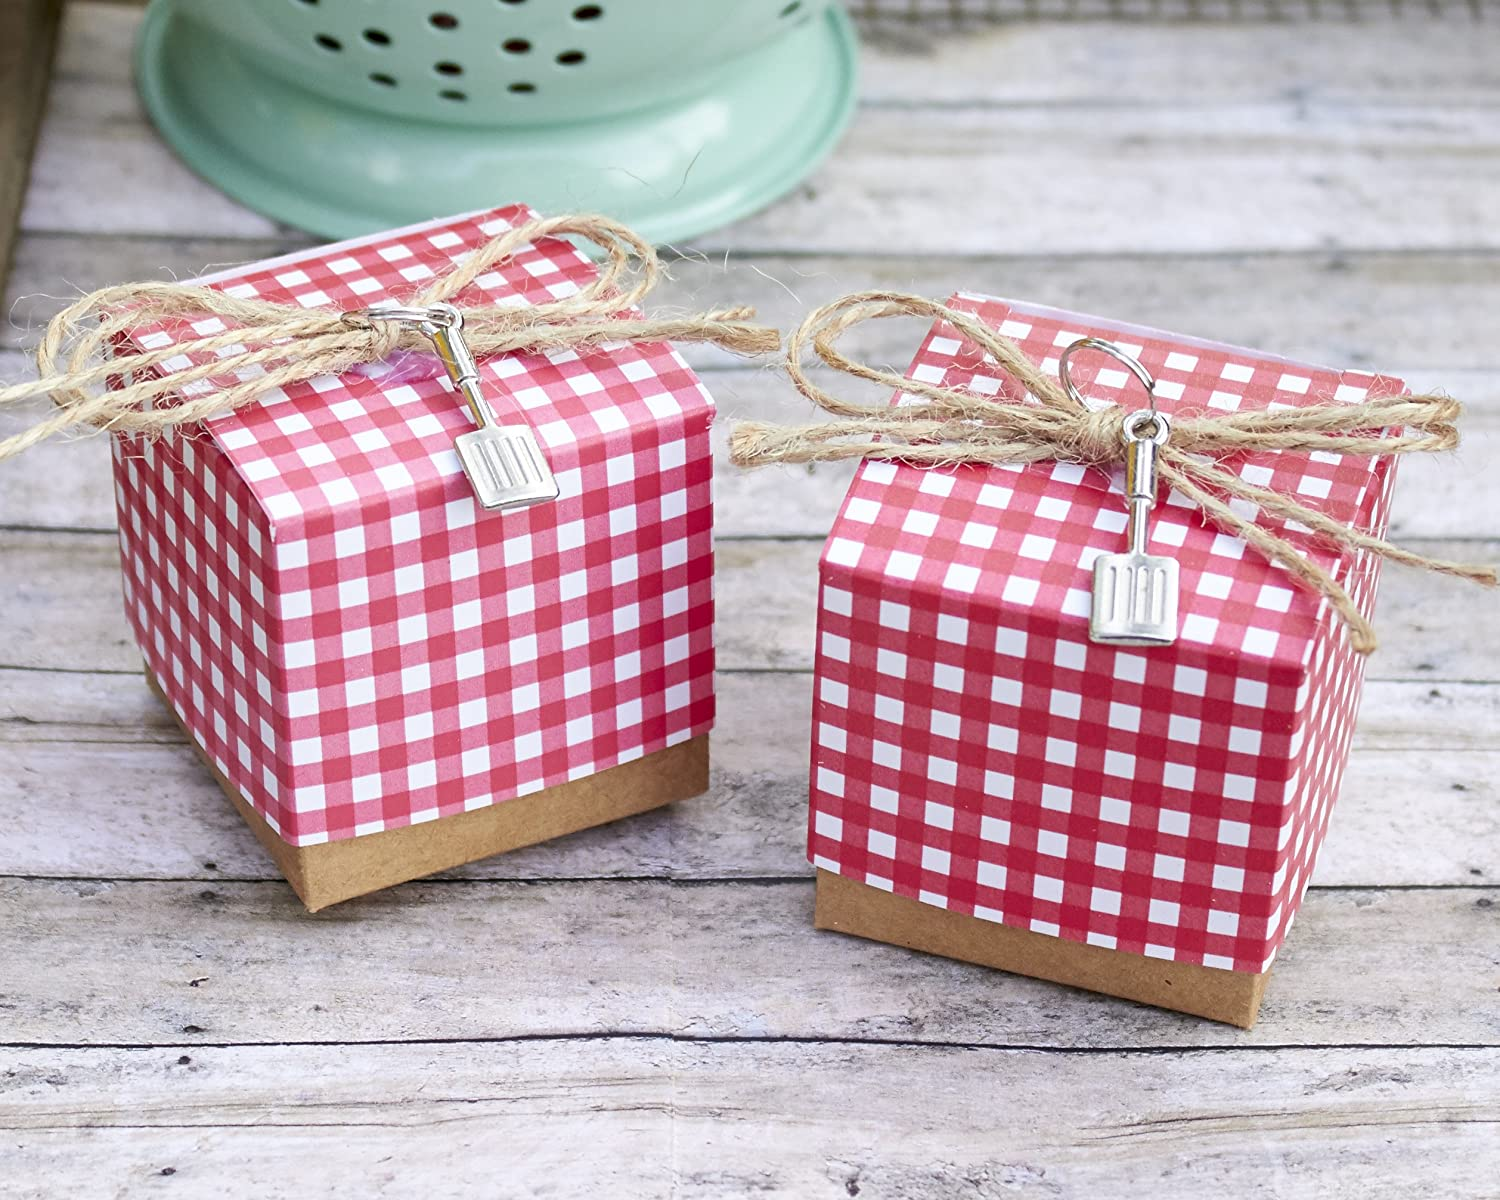 Amazon.com : Kate Aspen Red Gingham Favor Box with Spatula Charm ...